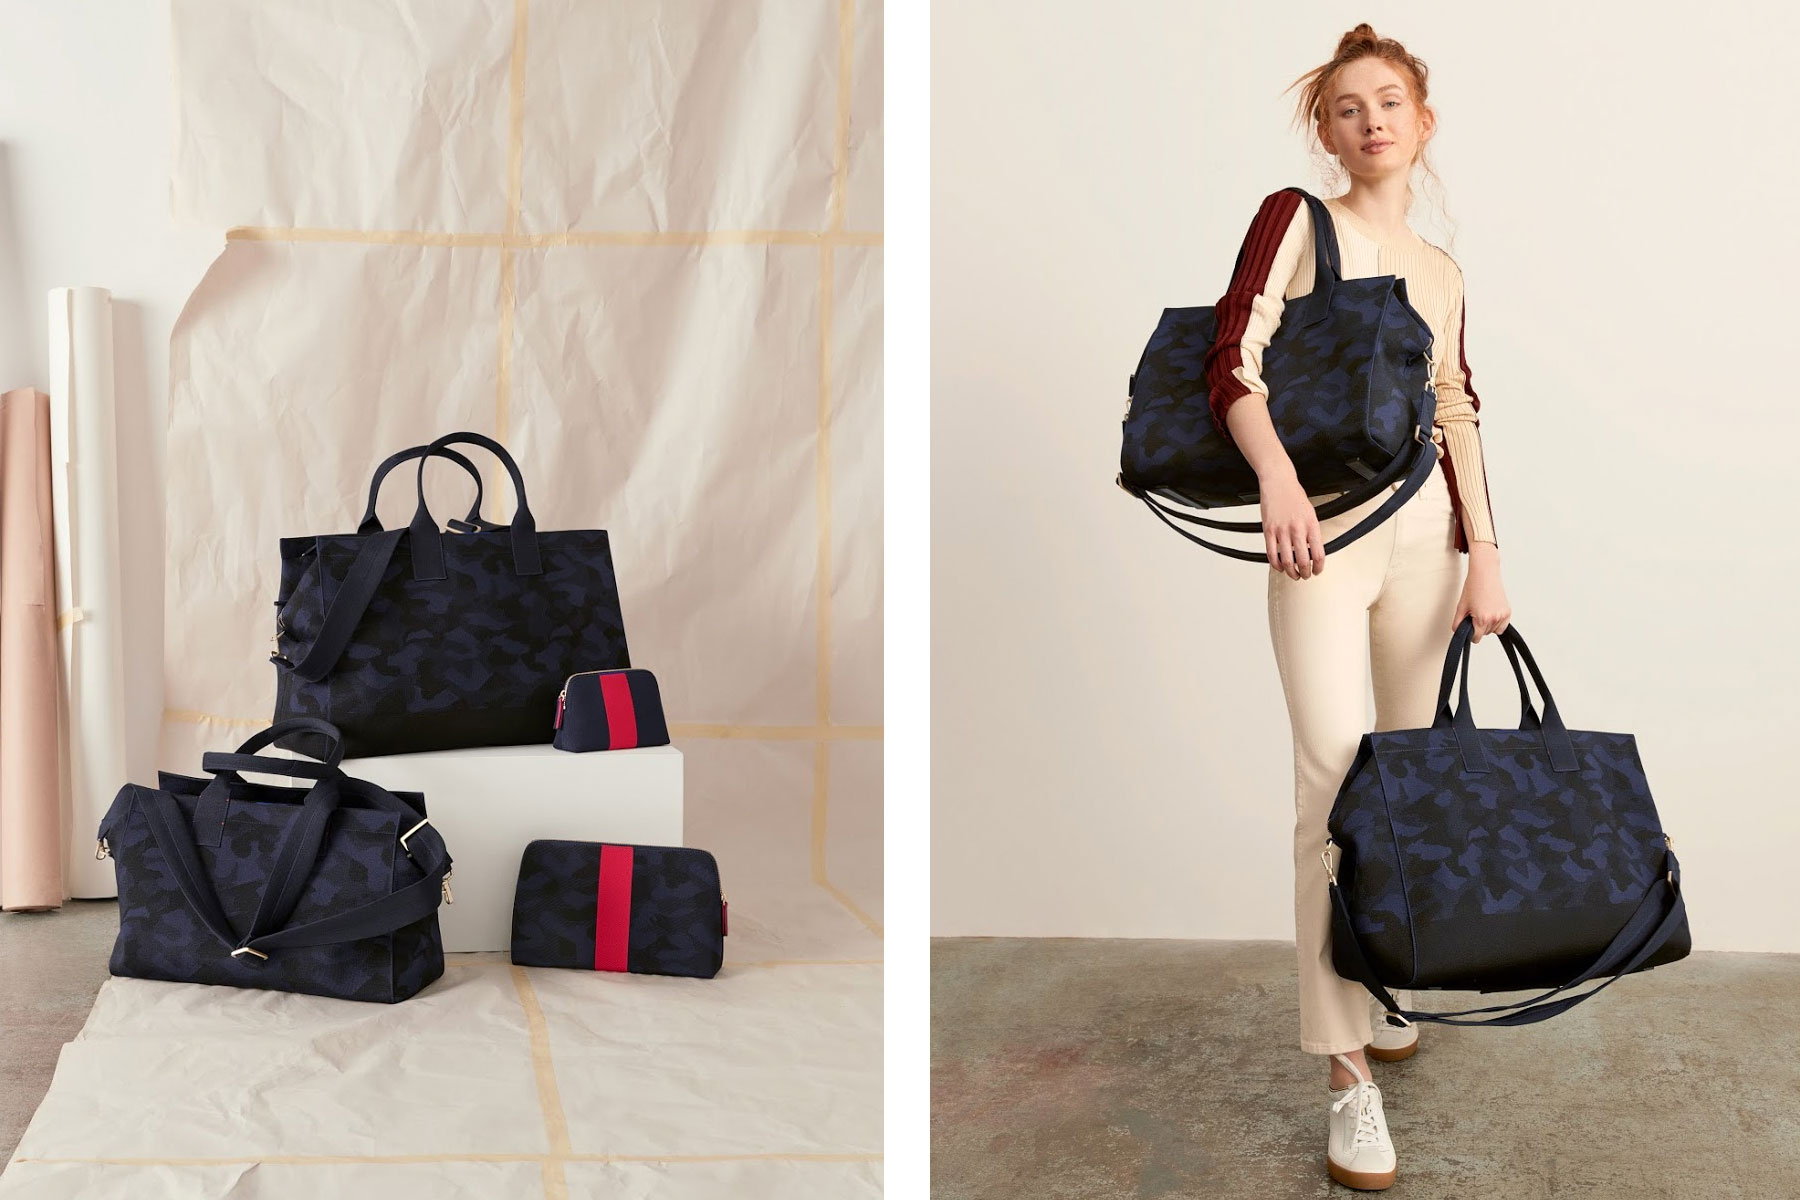 Woman holding various travel bags, duffels, weekender